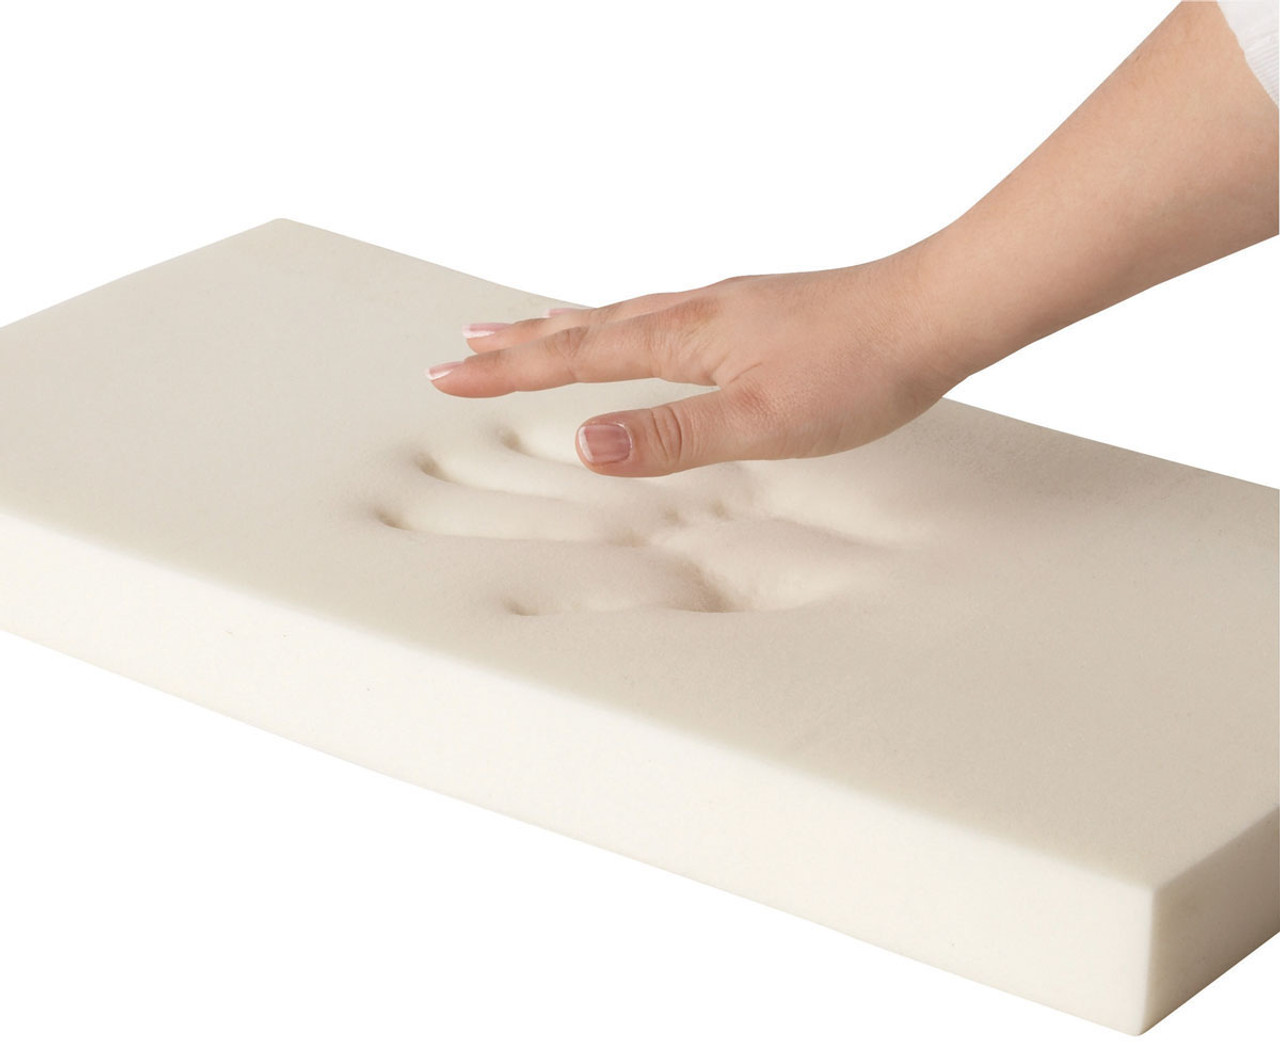 Medline Visco Foam Cushions